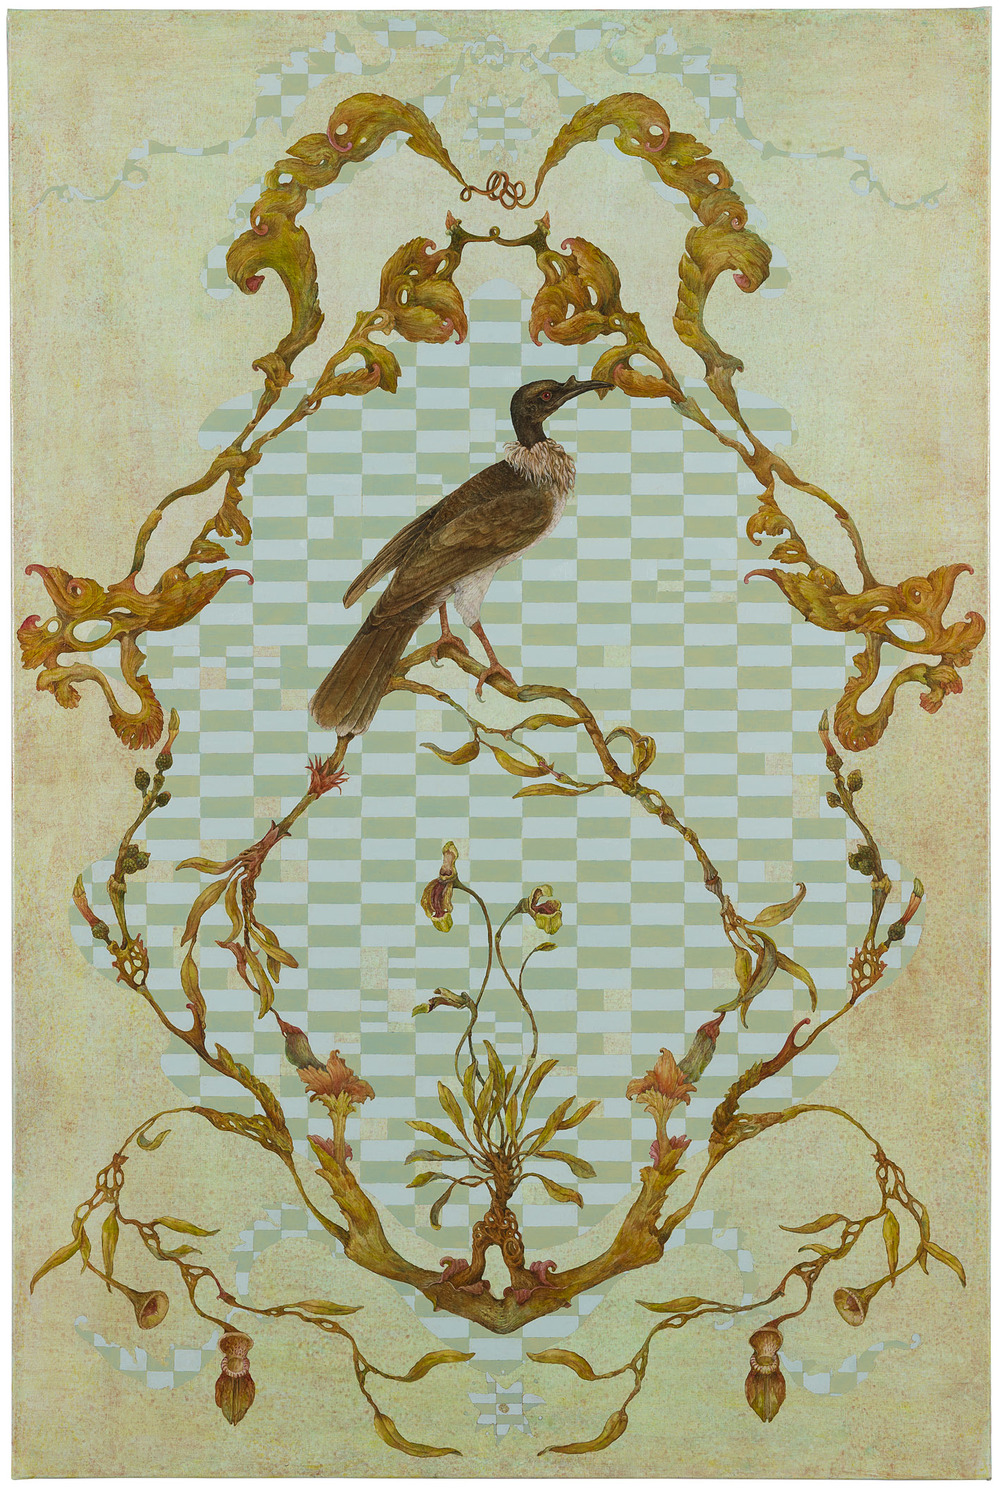 Bauer Brocade -Noisy Friarbird, 2014. Highly Commended Waterhouse Natural Science Prize